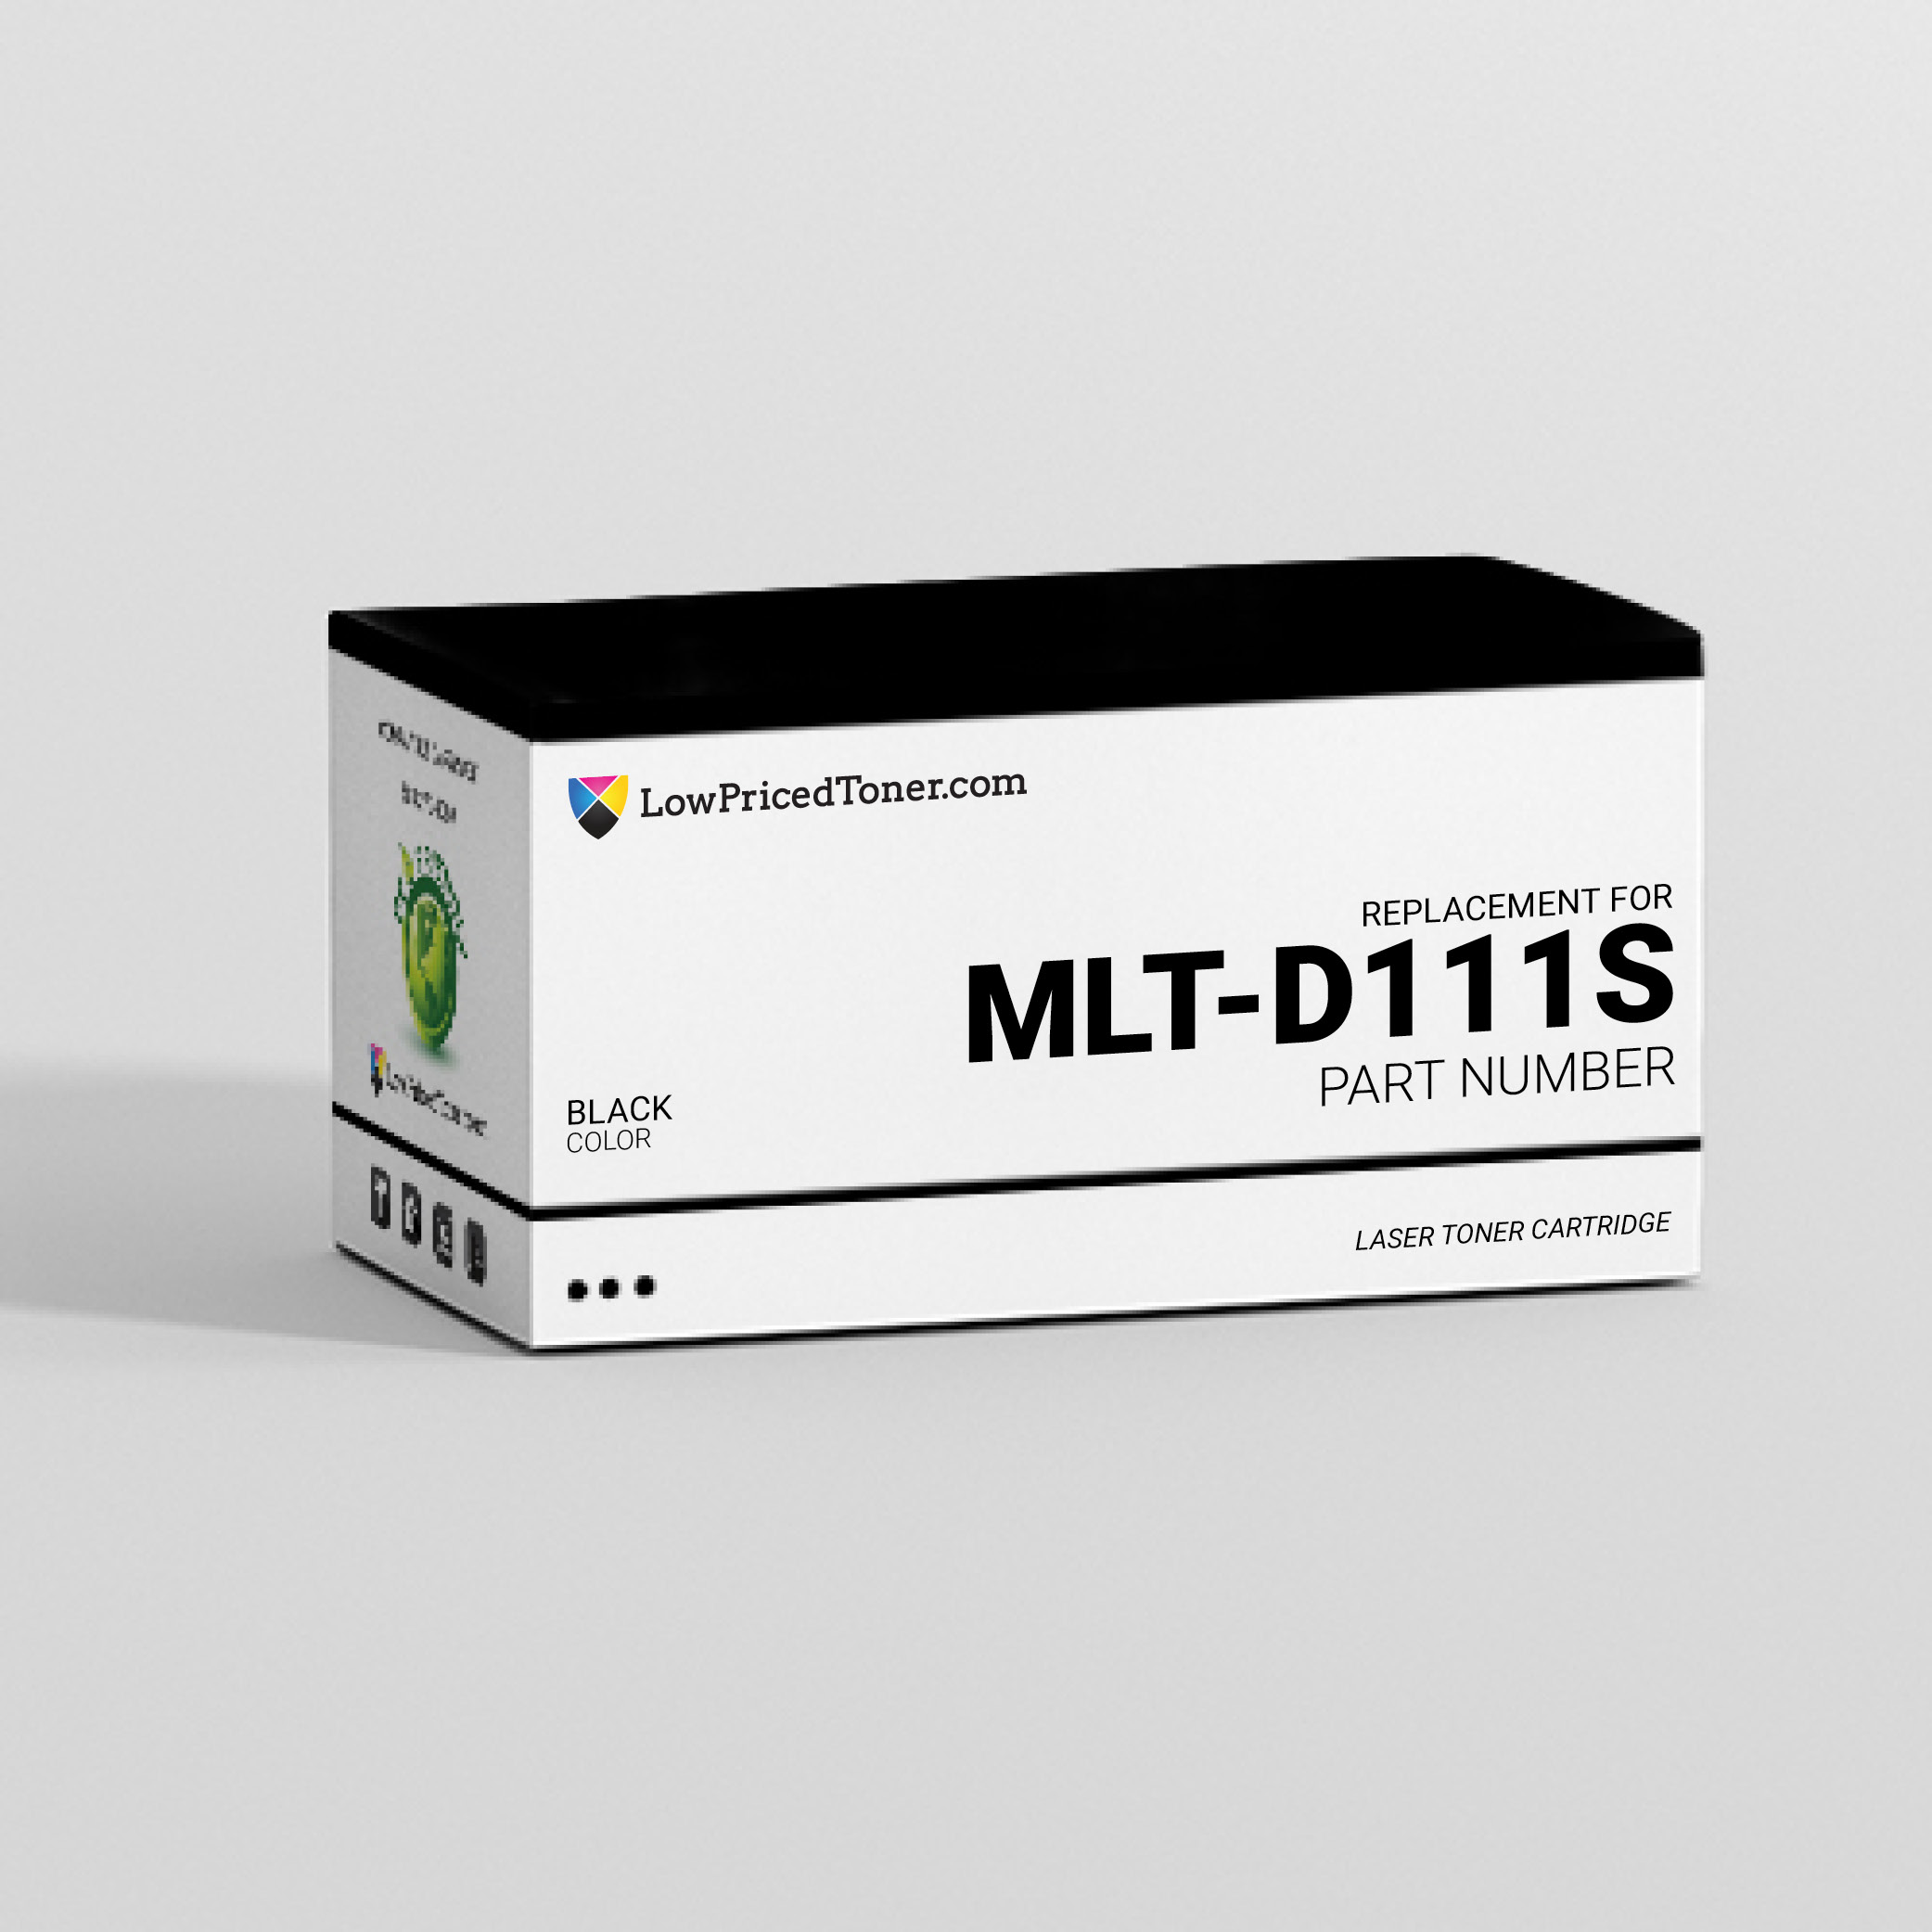 Samsung MLT-D111S Compatible Black Laser Toner Cartridge